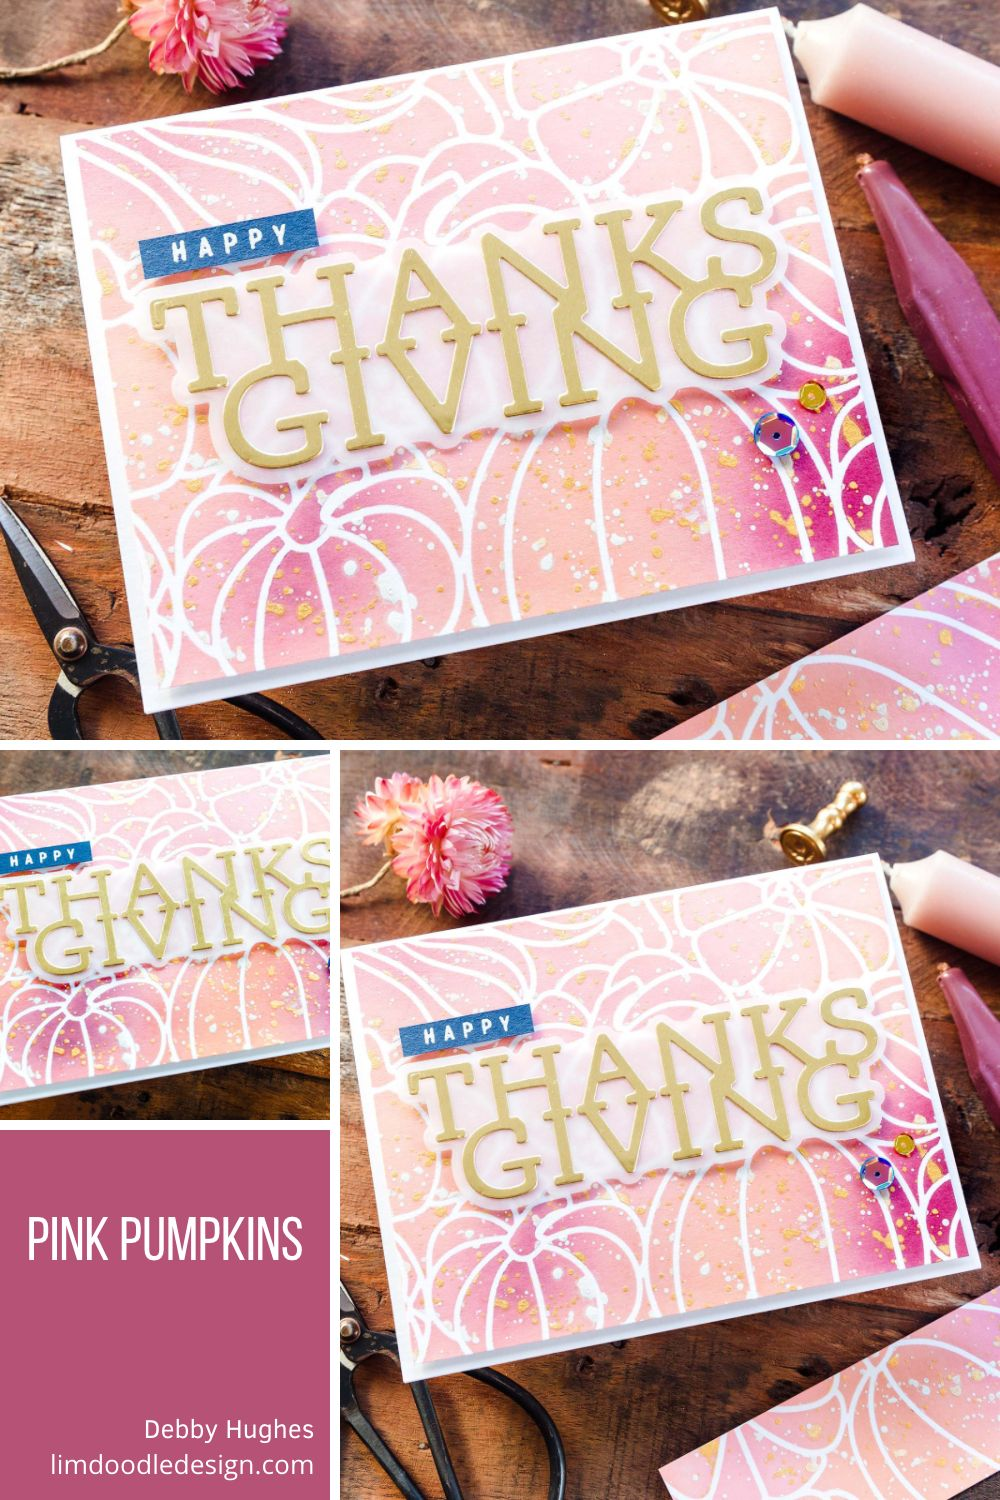 Who says you can't have pink pumpkins! Inspired by Cathy Zielske and a home decor magazine. Handmade card design by Debby Hughes.